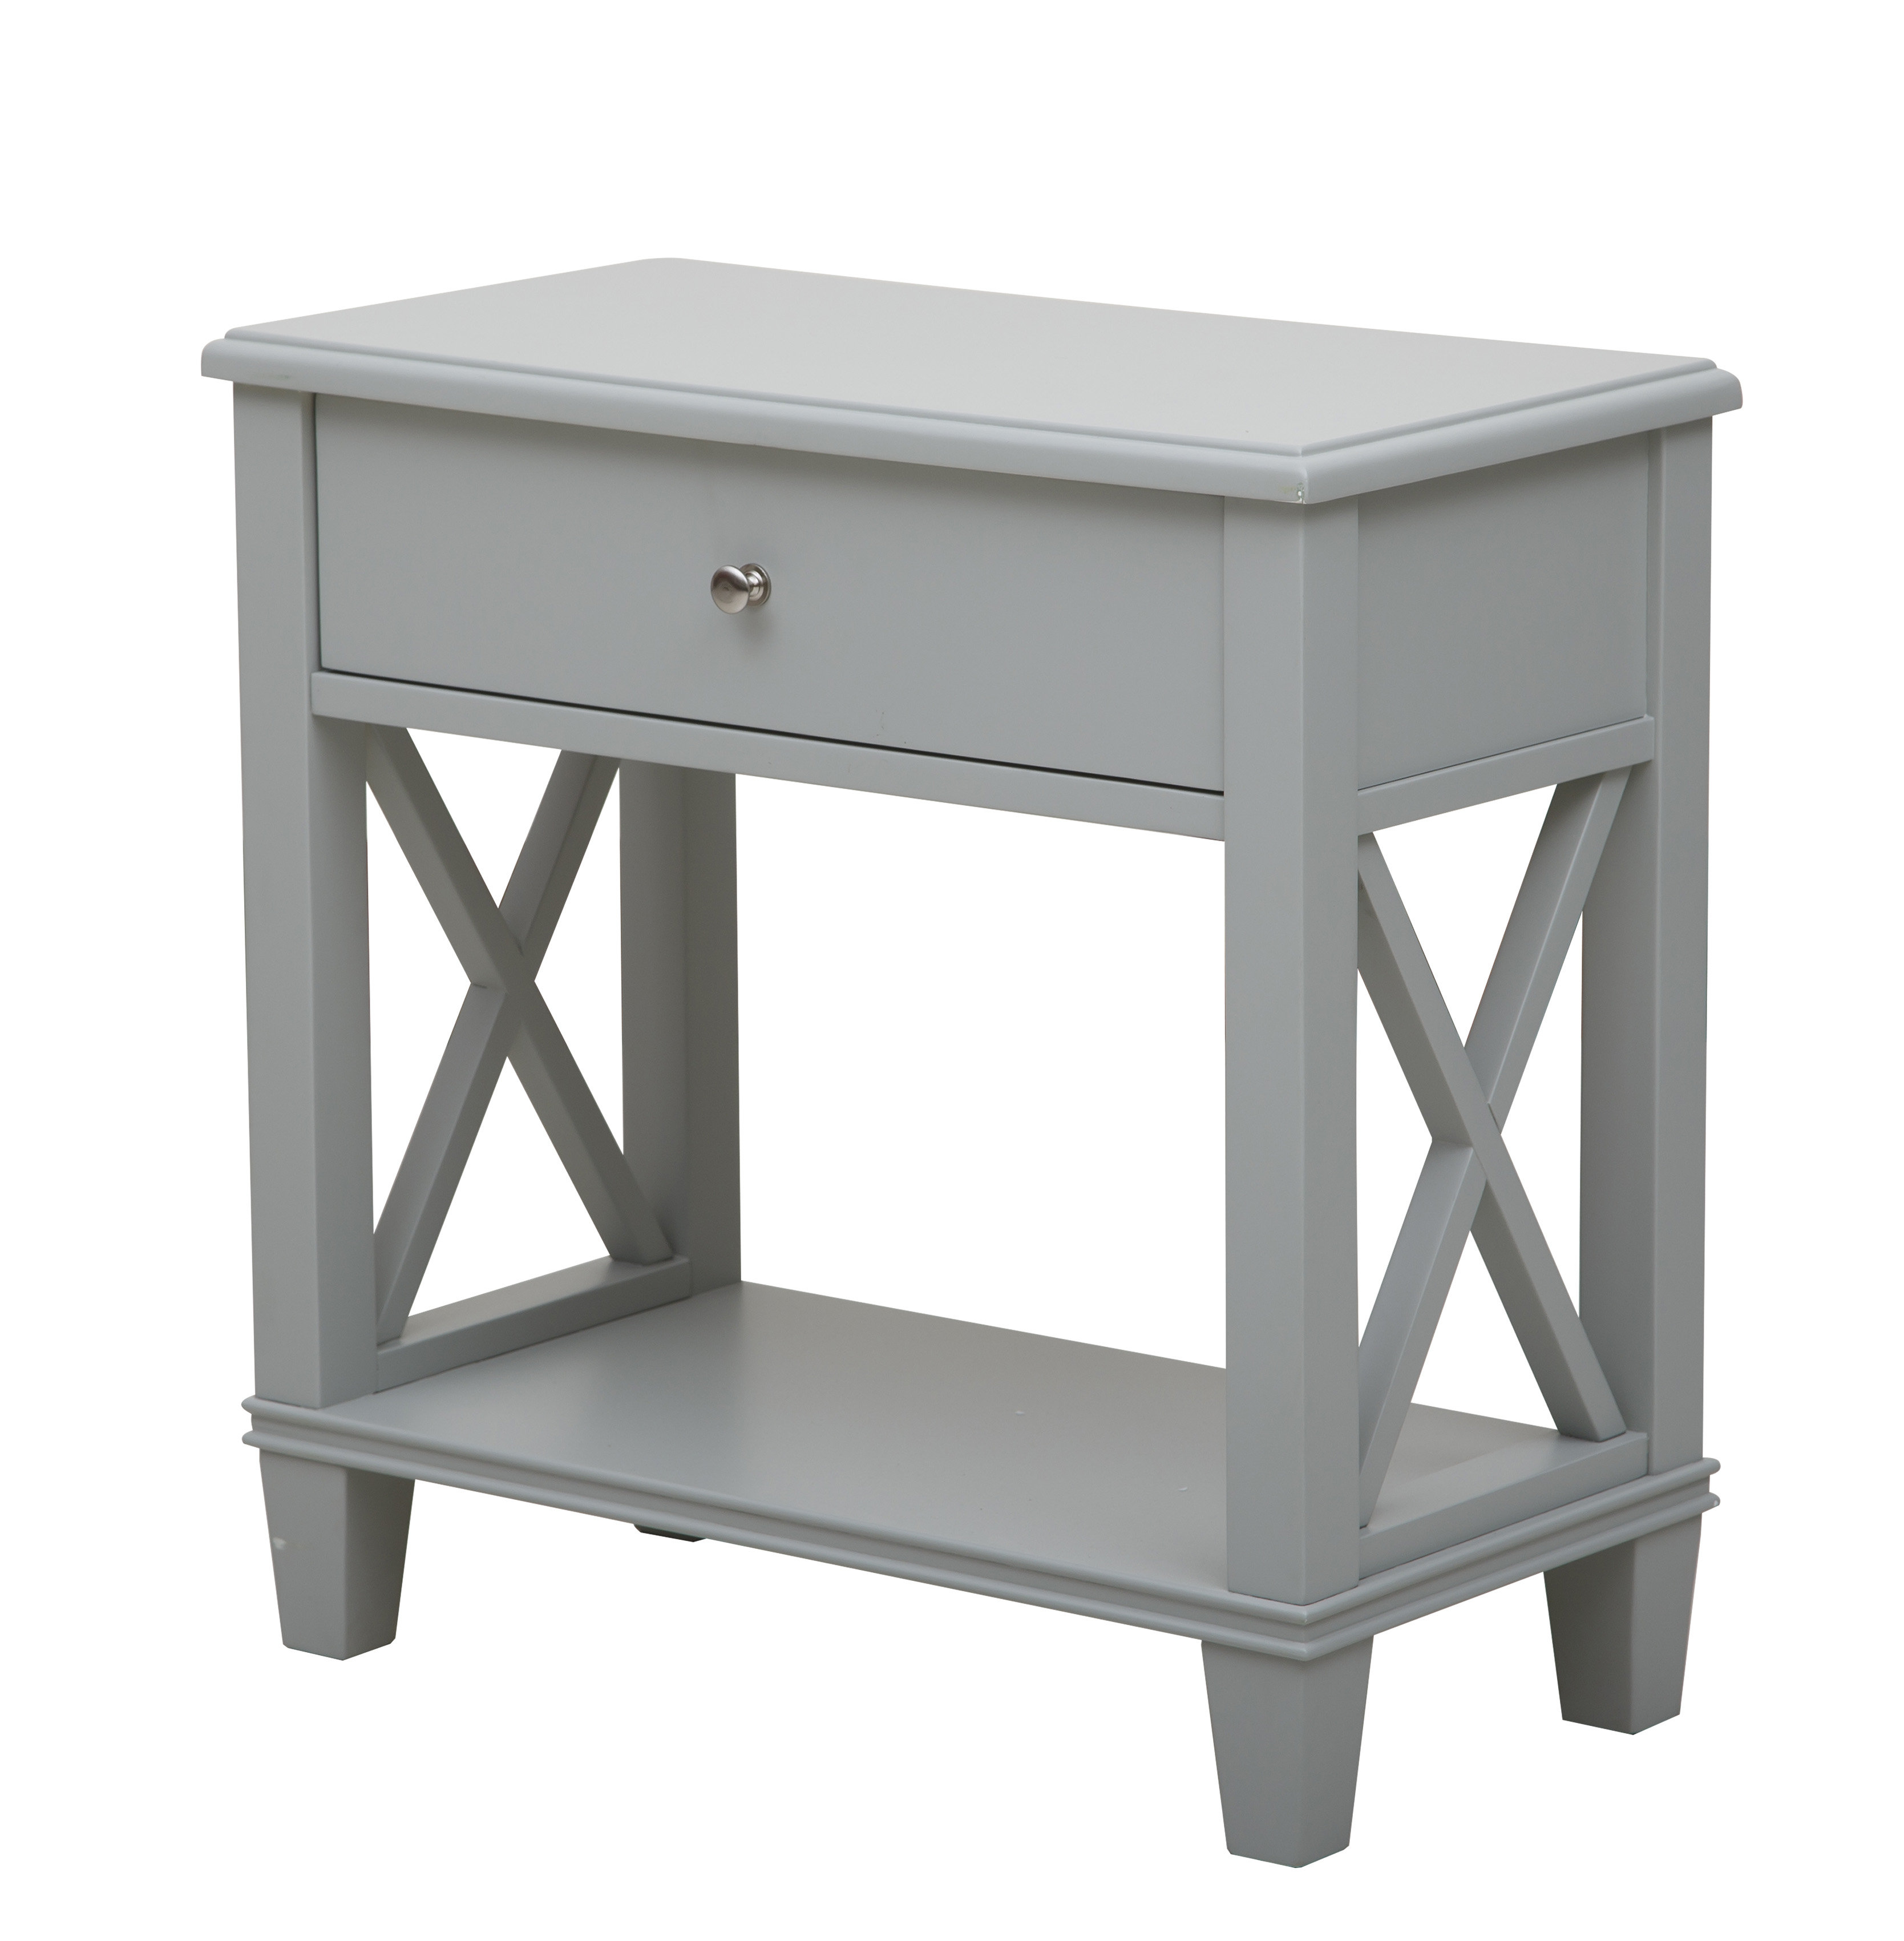 beachcrest home flintridge end table reviews whitewash accent small slim bedside dining room sets polished concrete folding patio farmhouse trestle wedding linens antique side